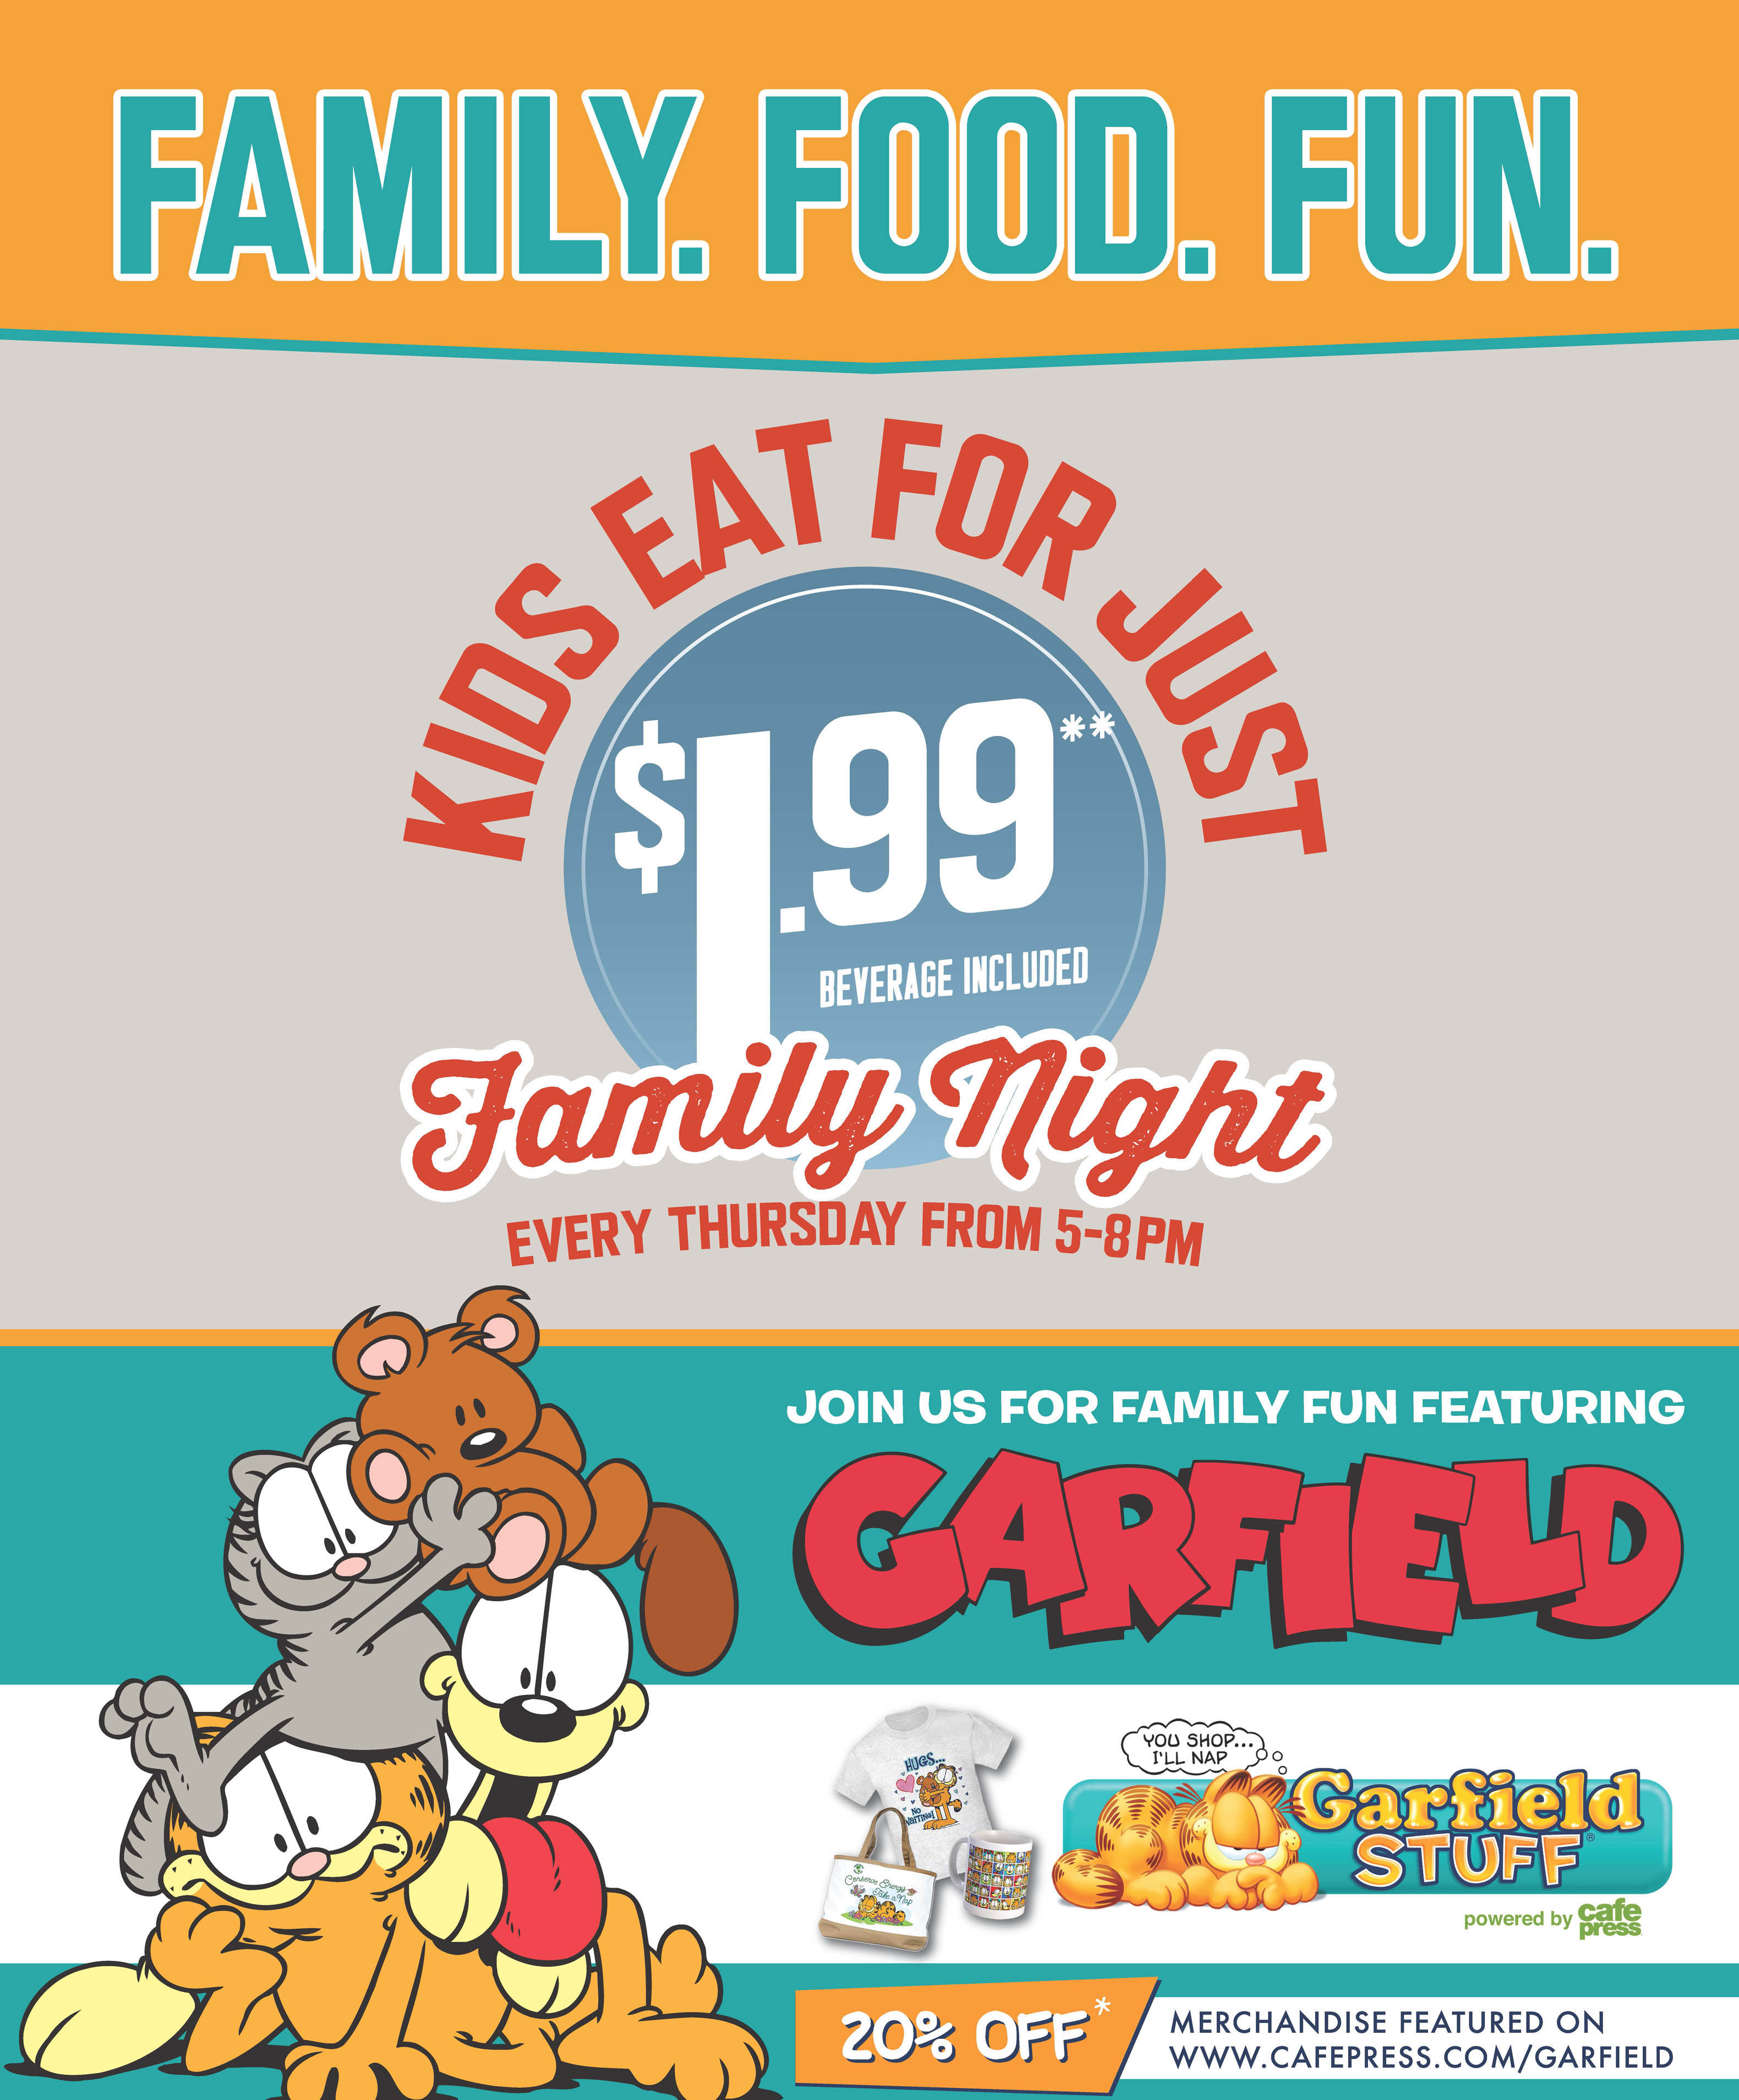 Ryan's is hosting Garfield themed Family Night on Thursdays!